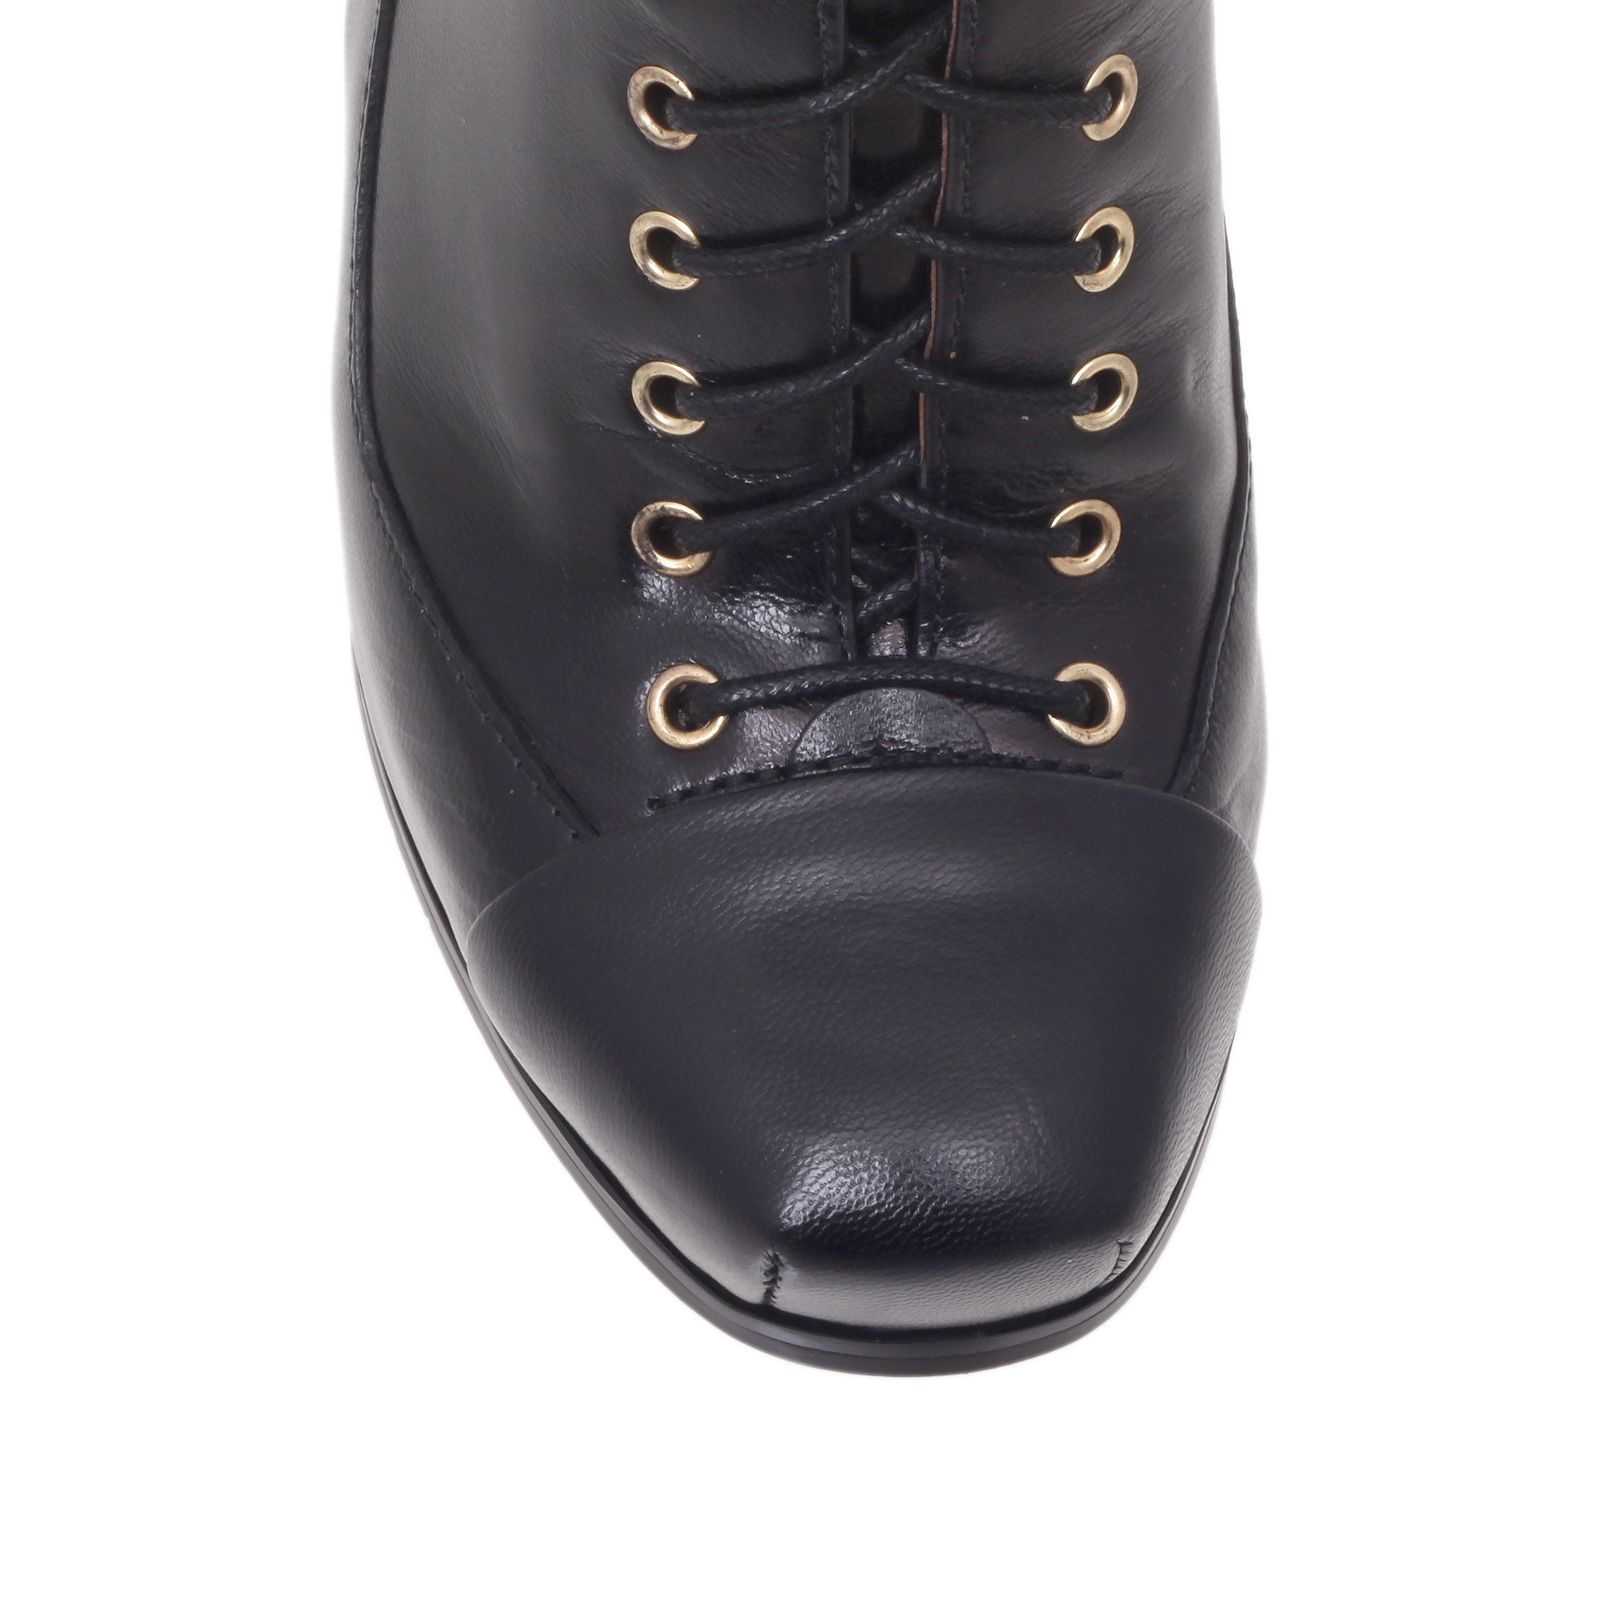 nine west oliviana high heel lace up shoe boot in black lyst